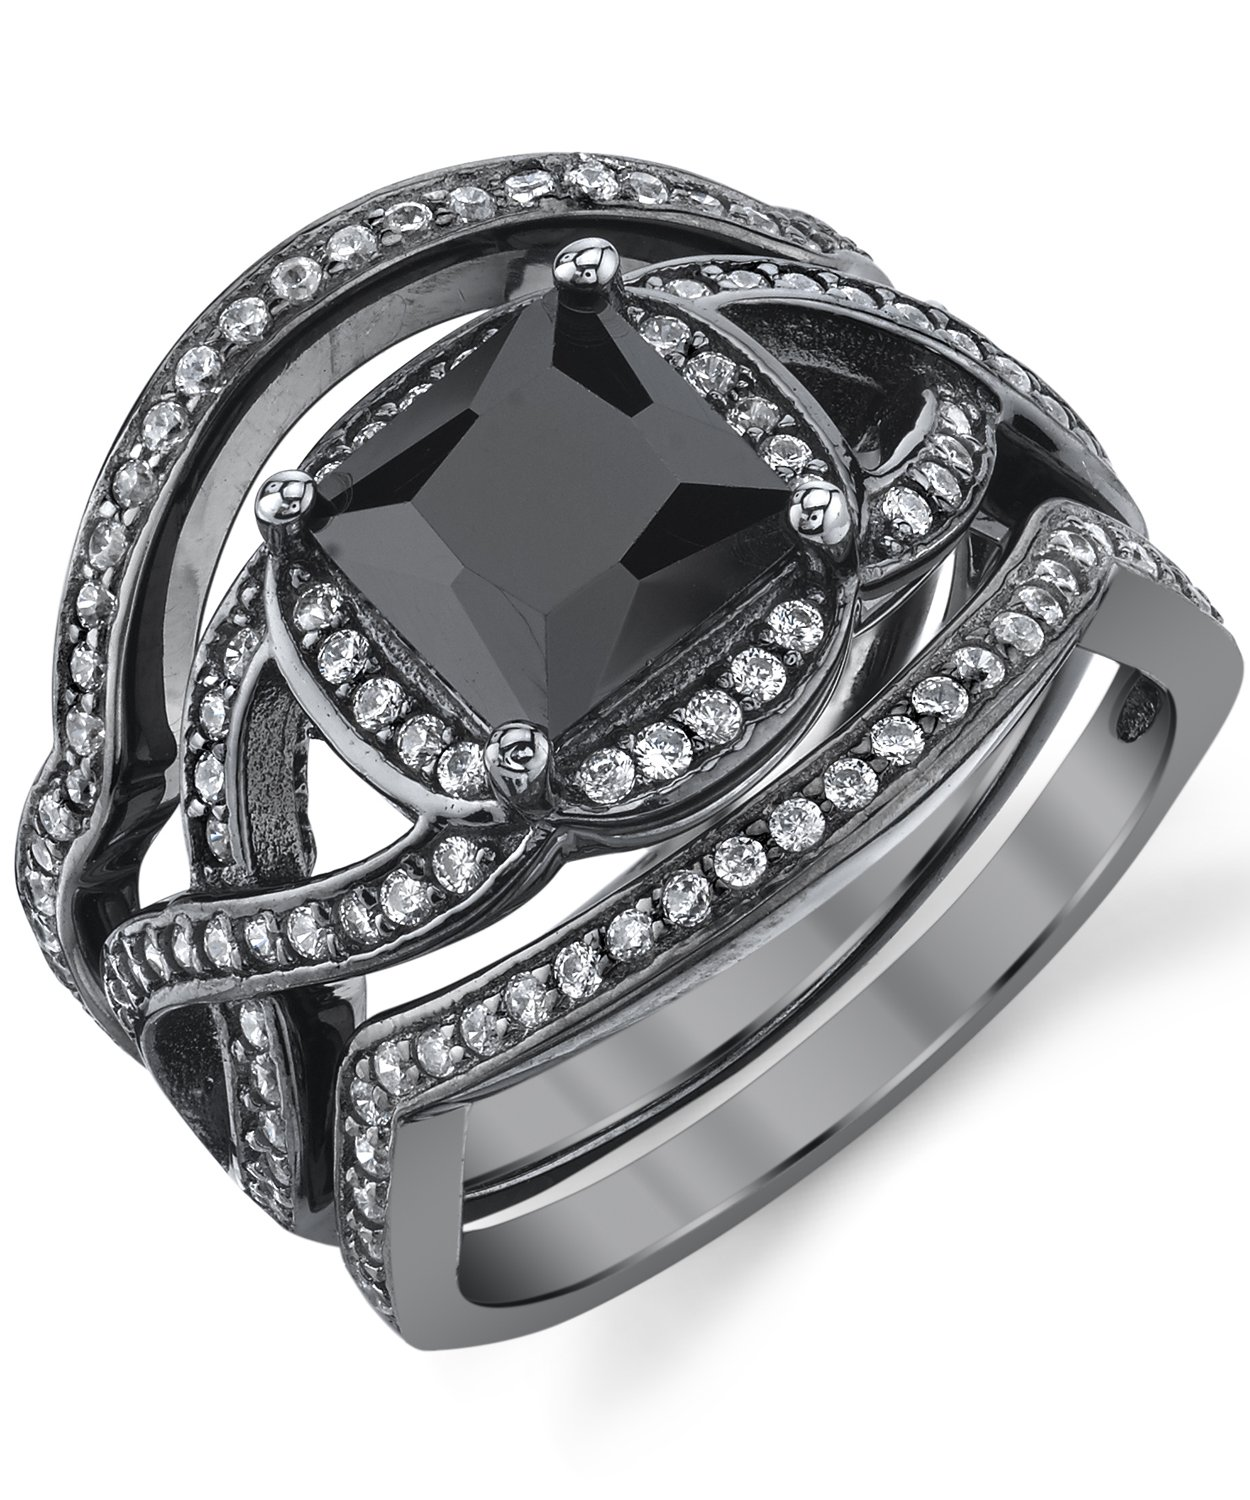 Black Rhodium Plated Sterling Silver Engagement Ring Bands, Bridal set W/ 2 Carat Black Princess Cut Cubic Zirconia 7